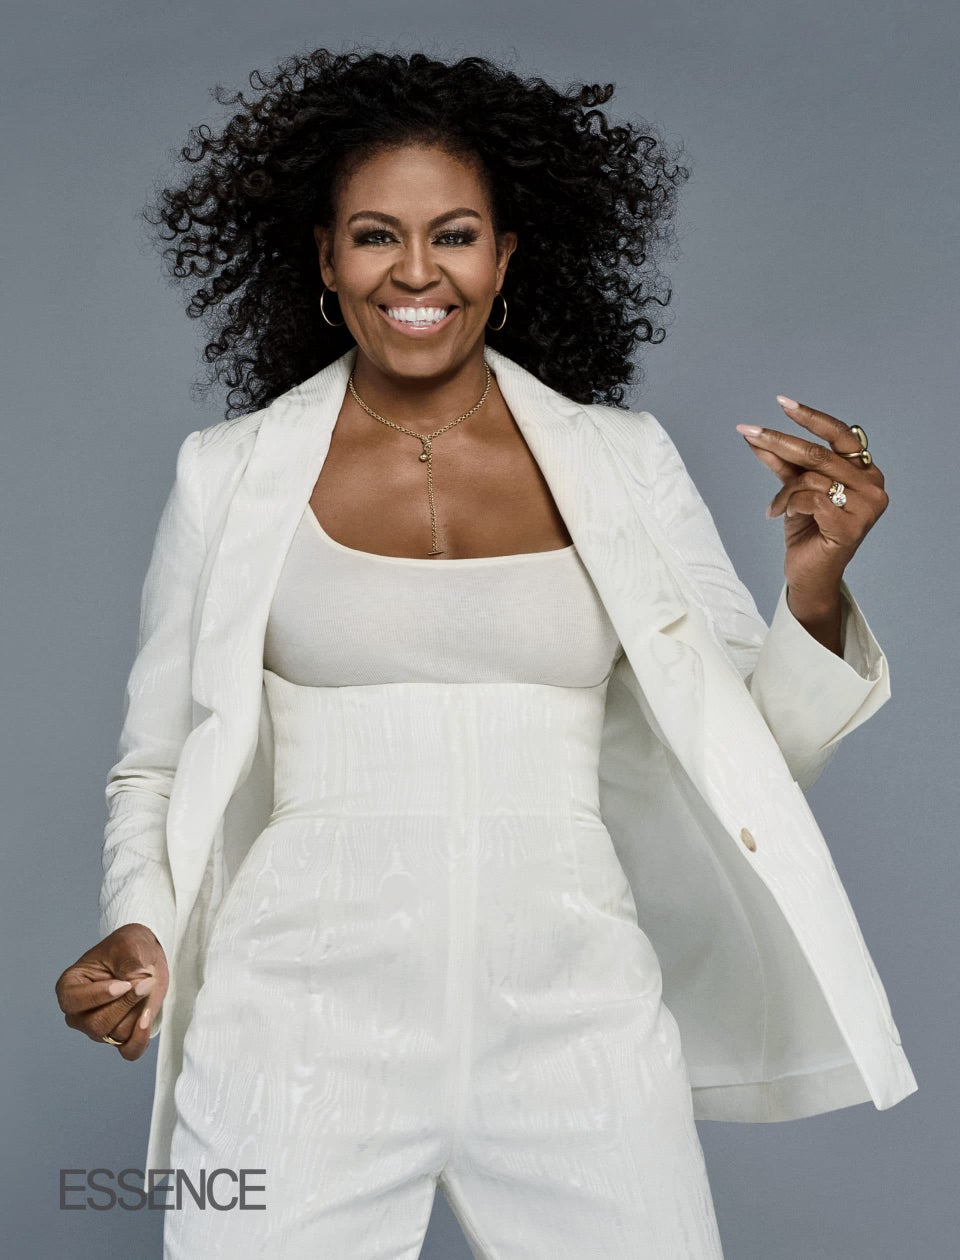 Watch #InMyFeed: Michelle Obama's Rockin' Her Natural Curls For The First Time On The Cover Of ESSENCE